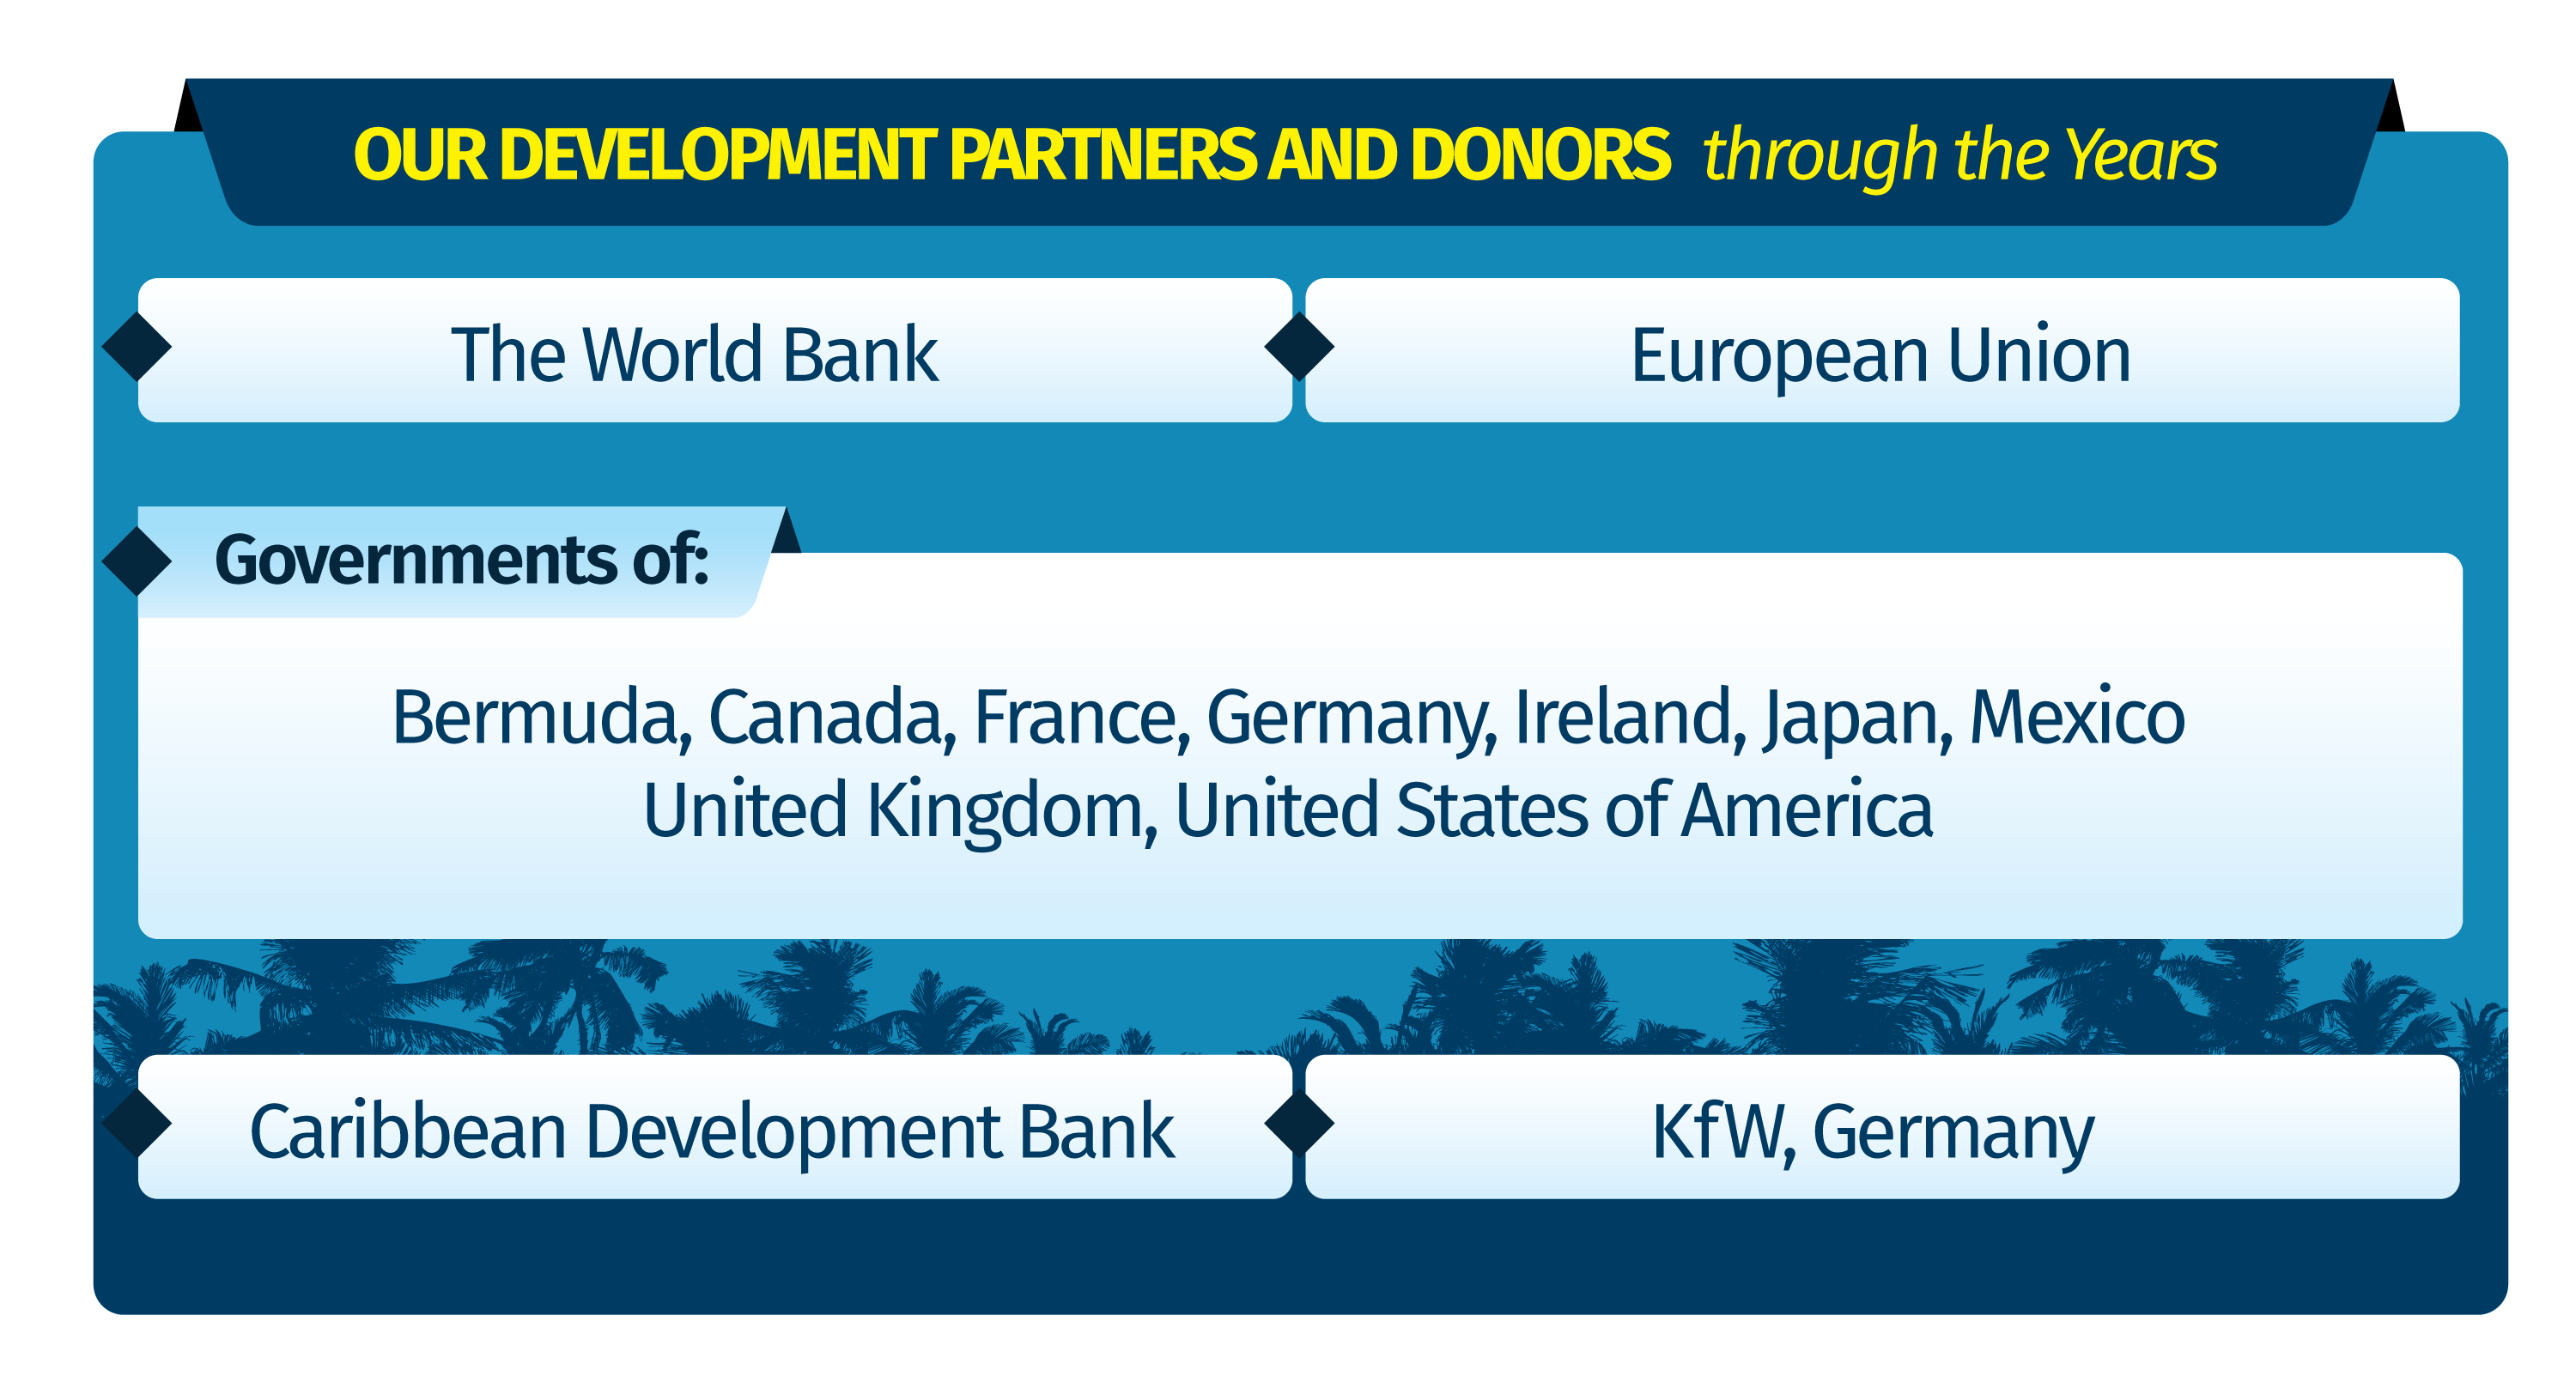 CCRIF Development Partners and Donors Throughout the Years